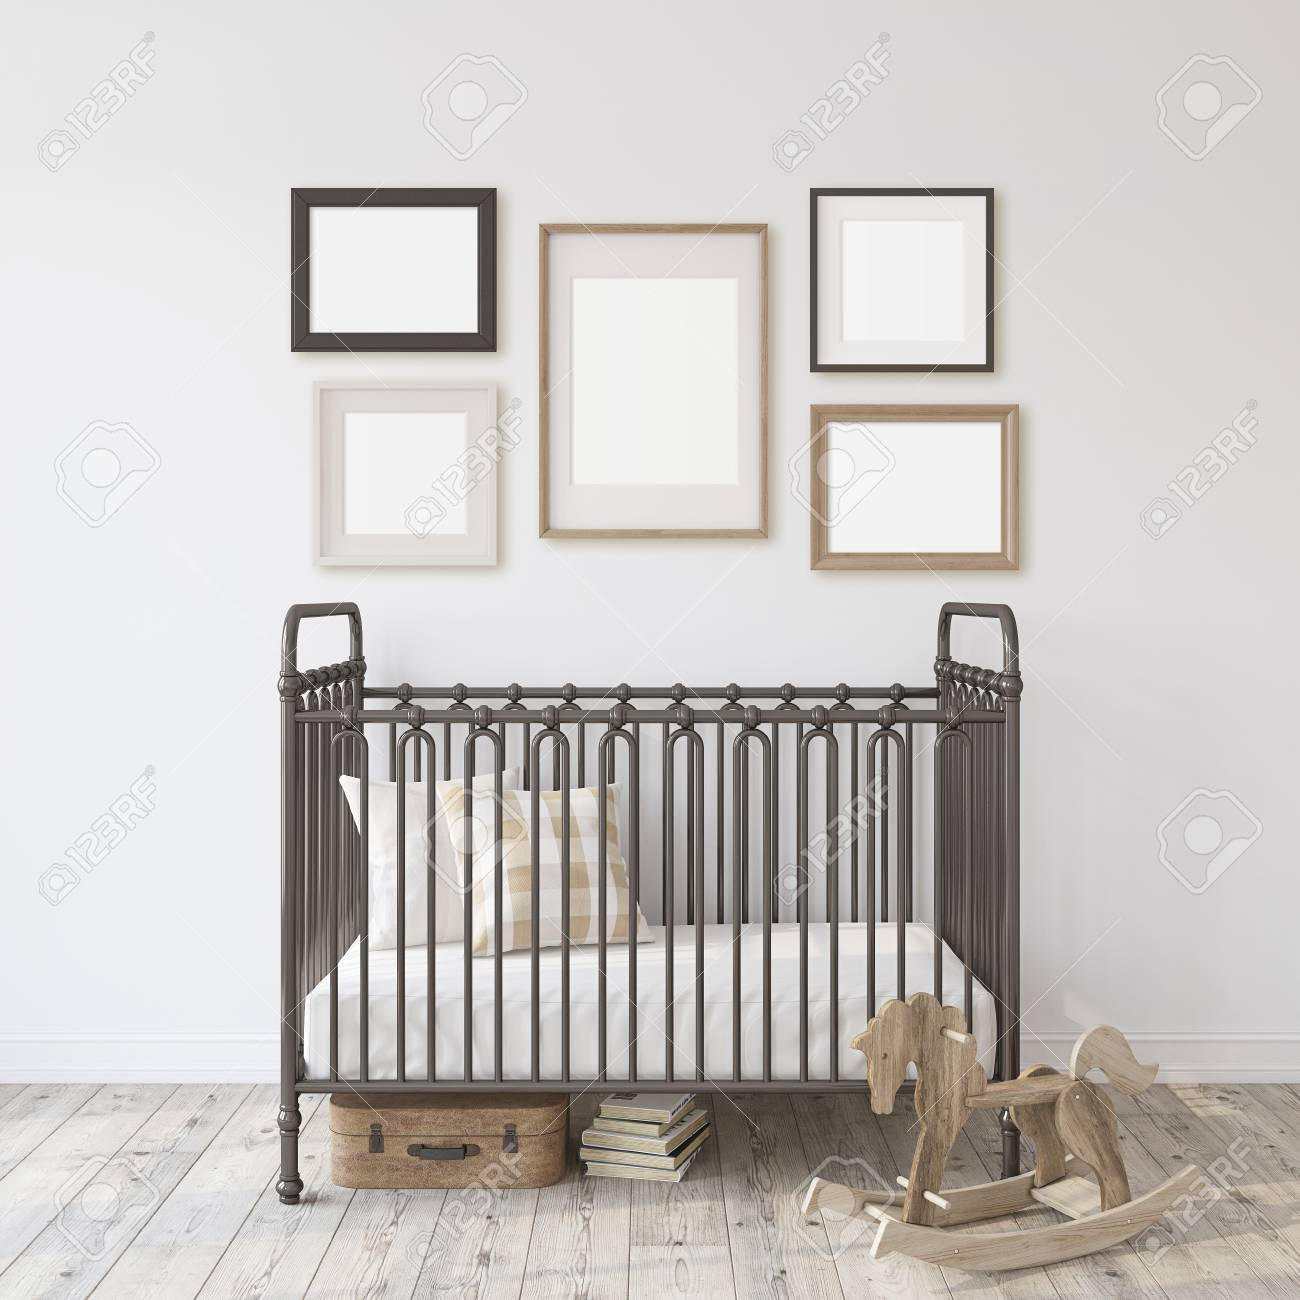 Farmhouse nursery. Black metal crib near white wall. Five different frames on the wall. Interior and frame mockup. 3d rendering. - 118411790